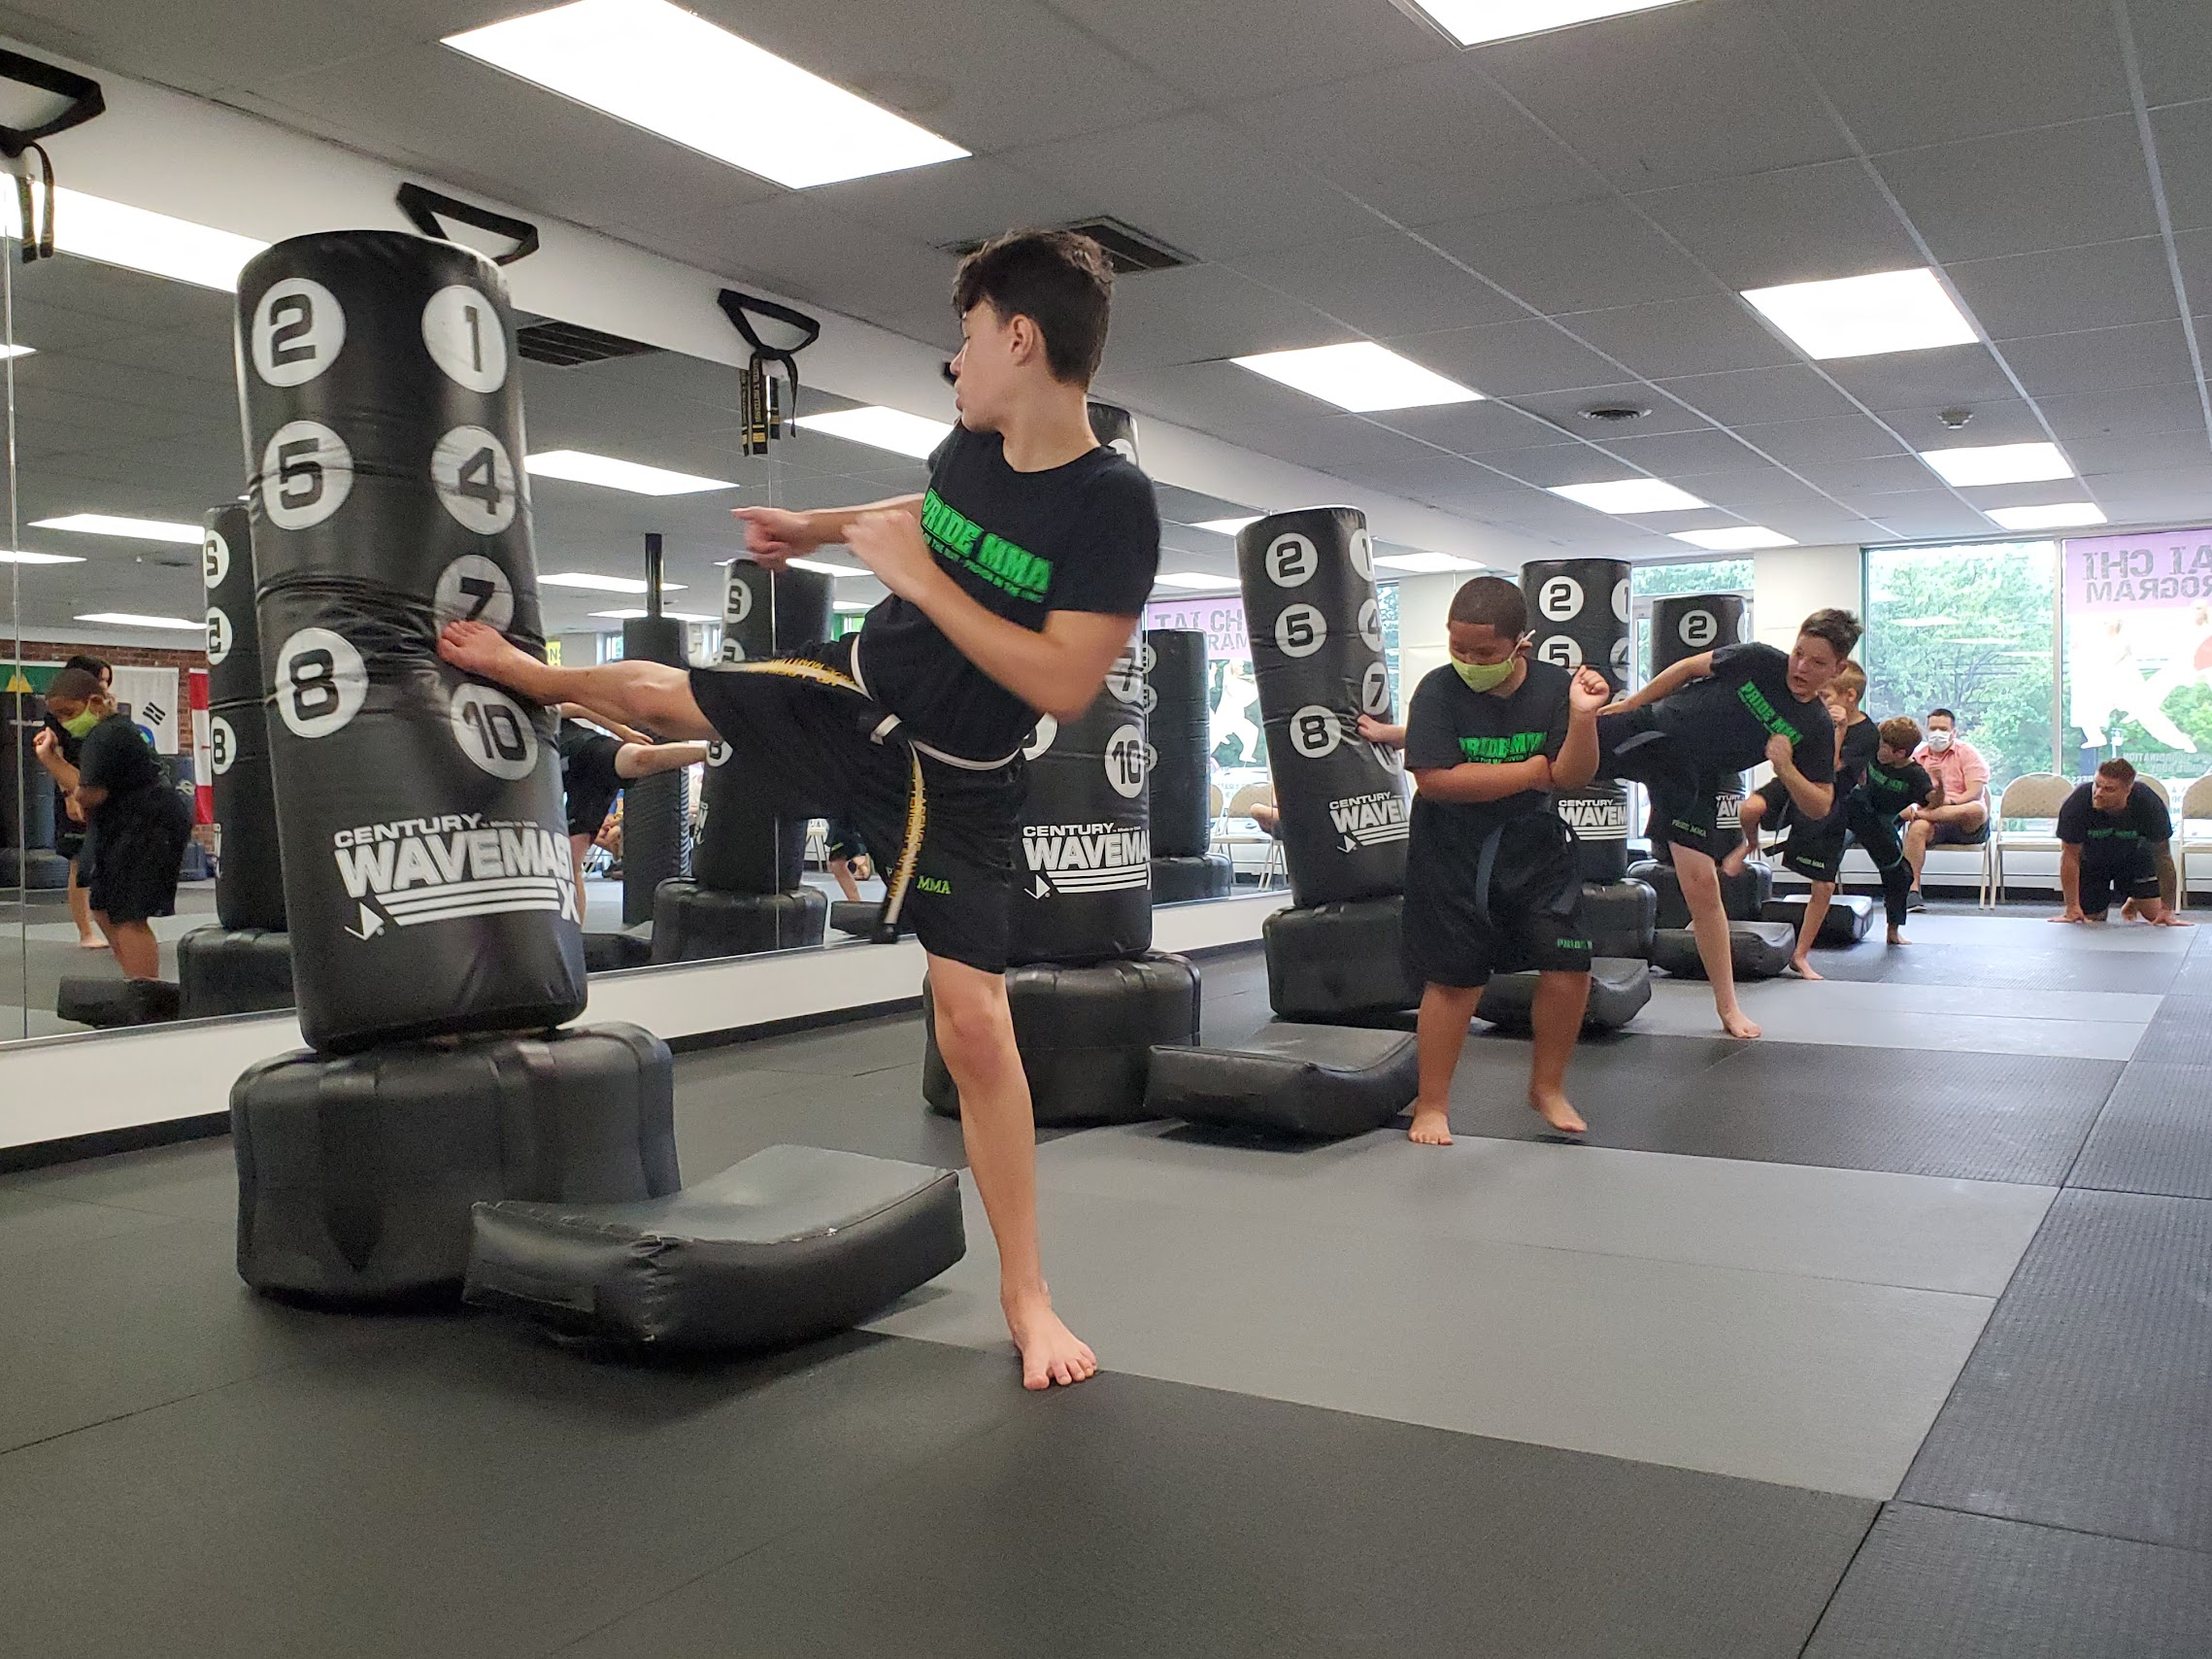 3 Great Reasons to Kickstart Your Fitness with Kickboxing